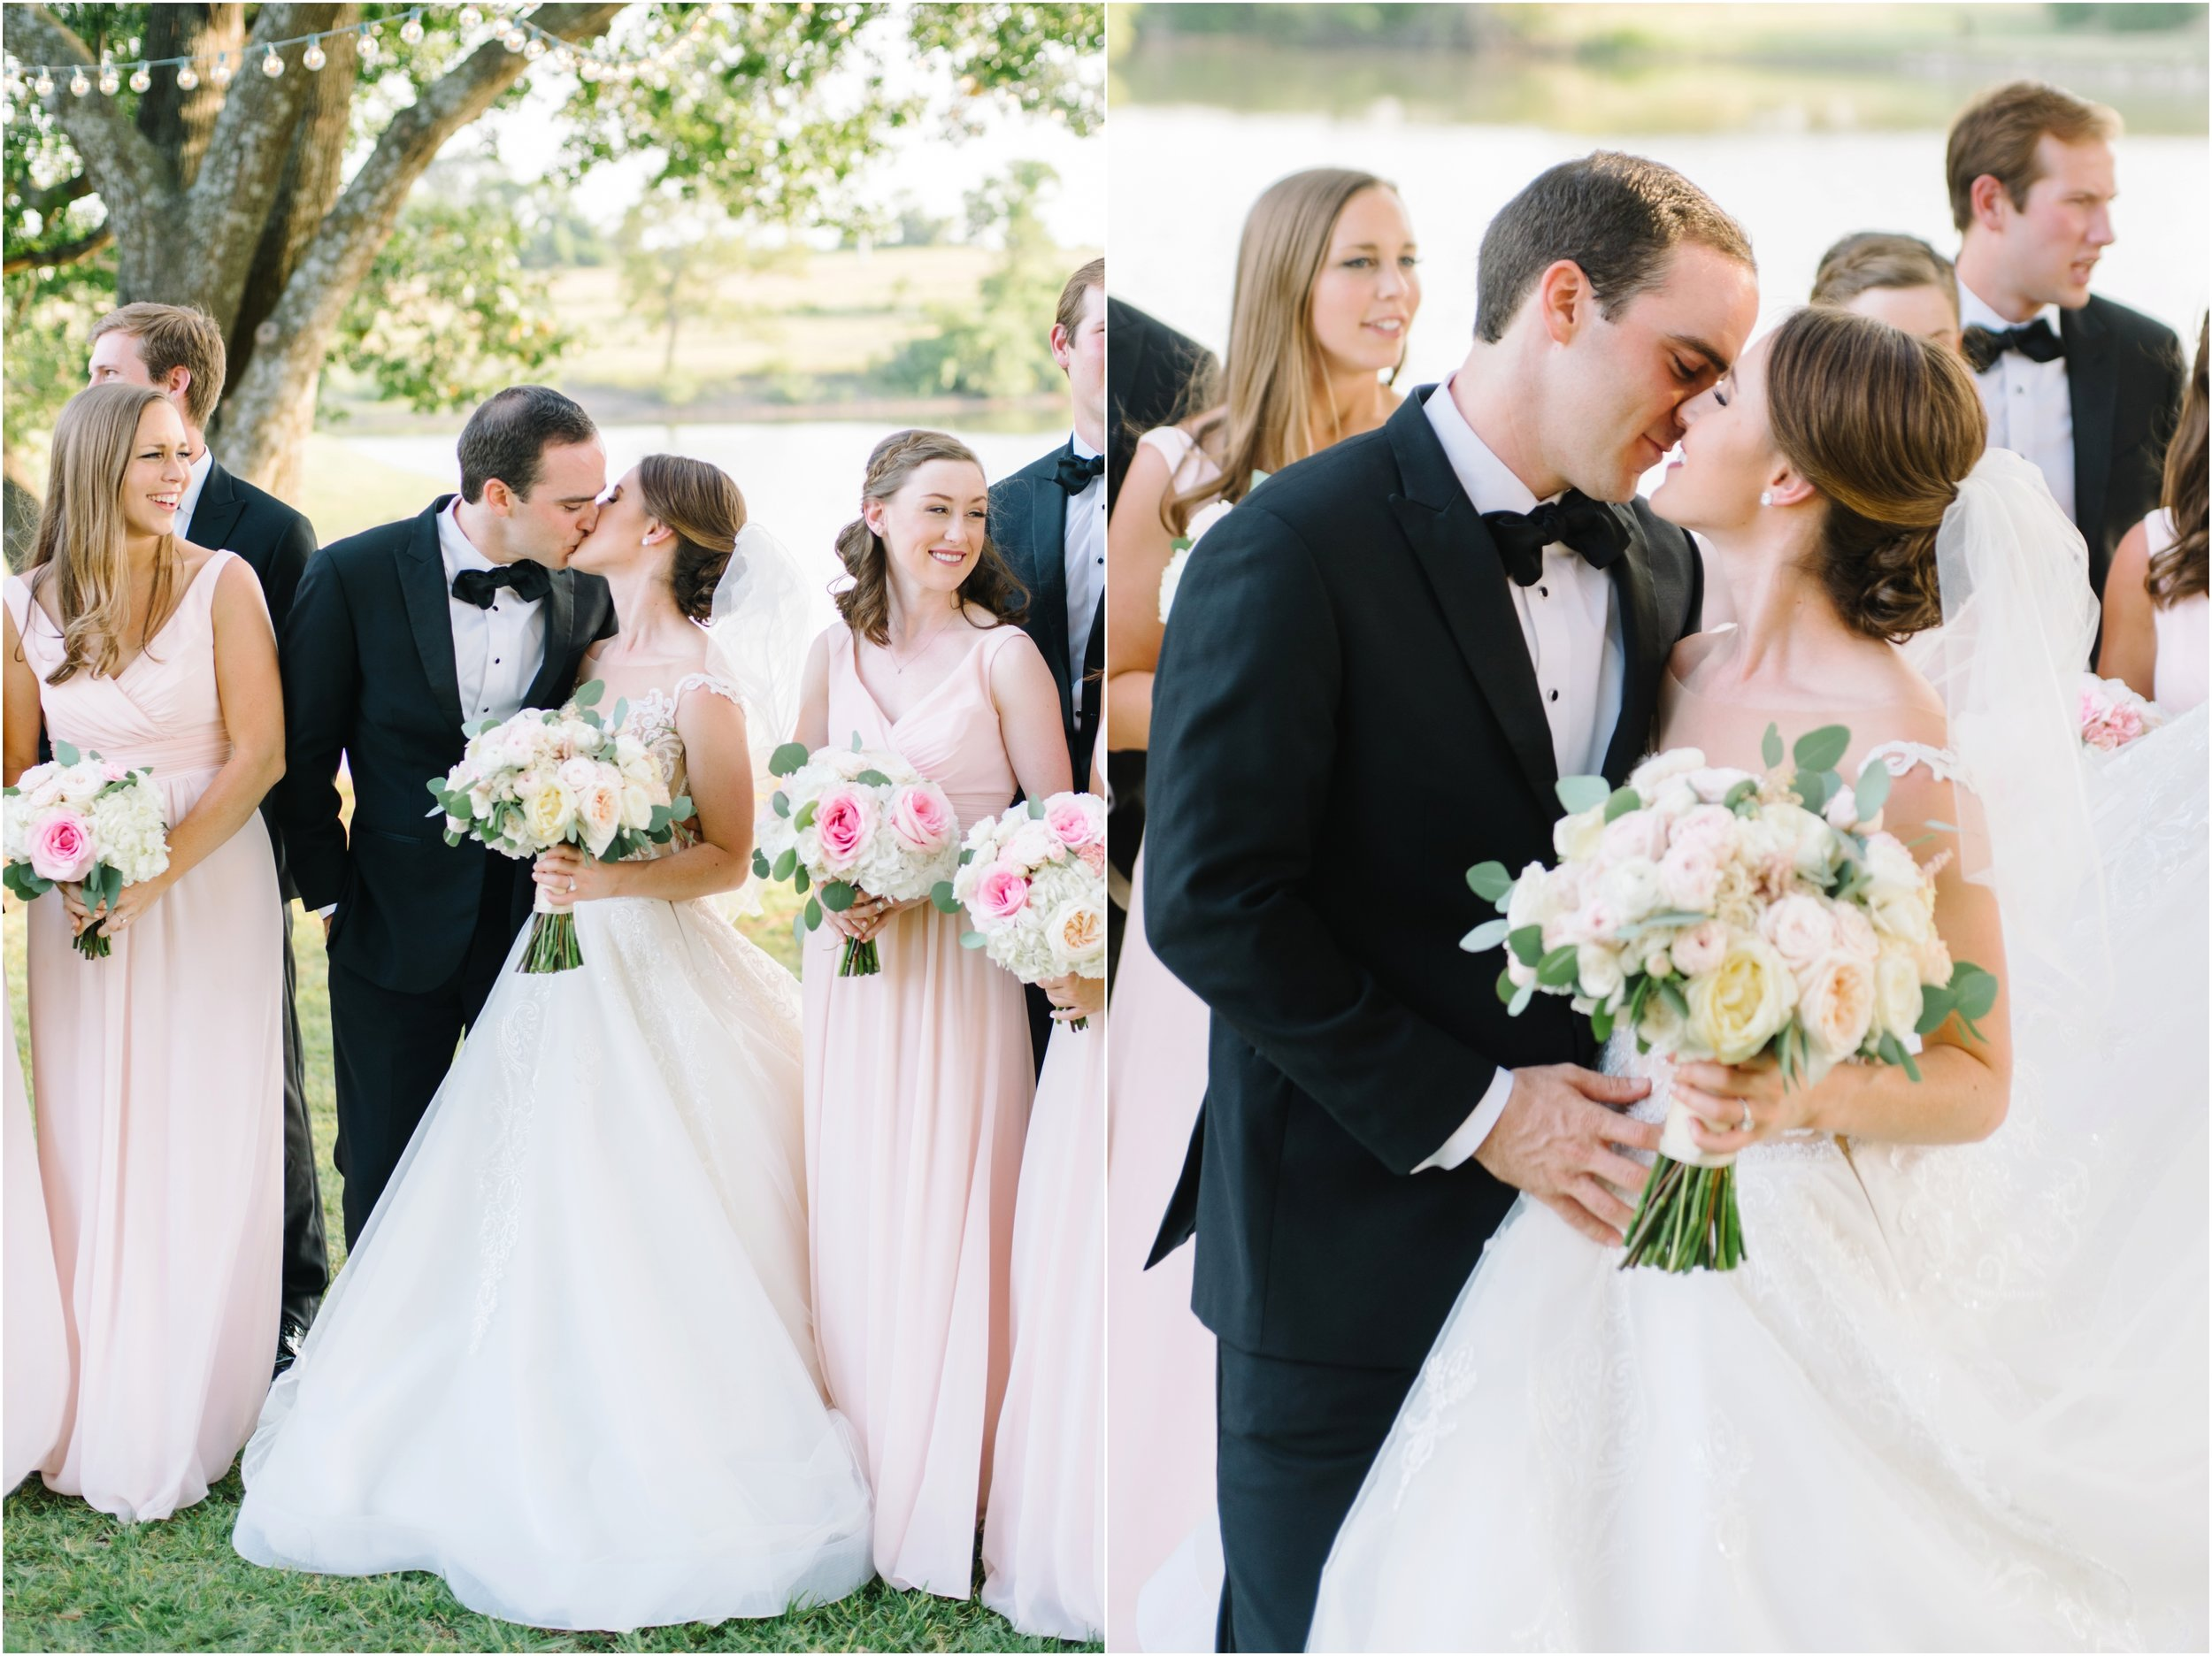 dallasweddingphotographer_fortworthweddingphotographer_texasweddingphotographer_mattandjulieweddings_whiterocklakewedding_KayleighClay_0027.jpg